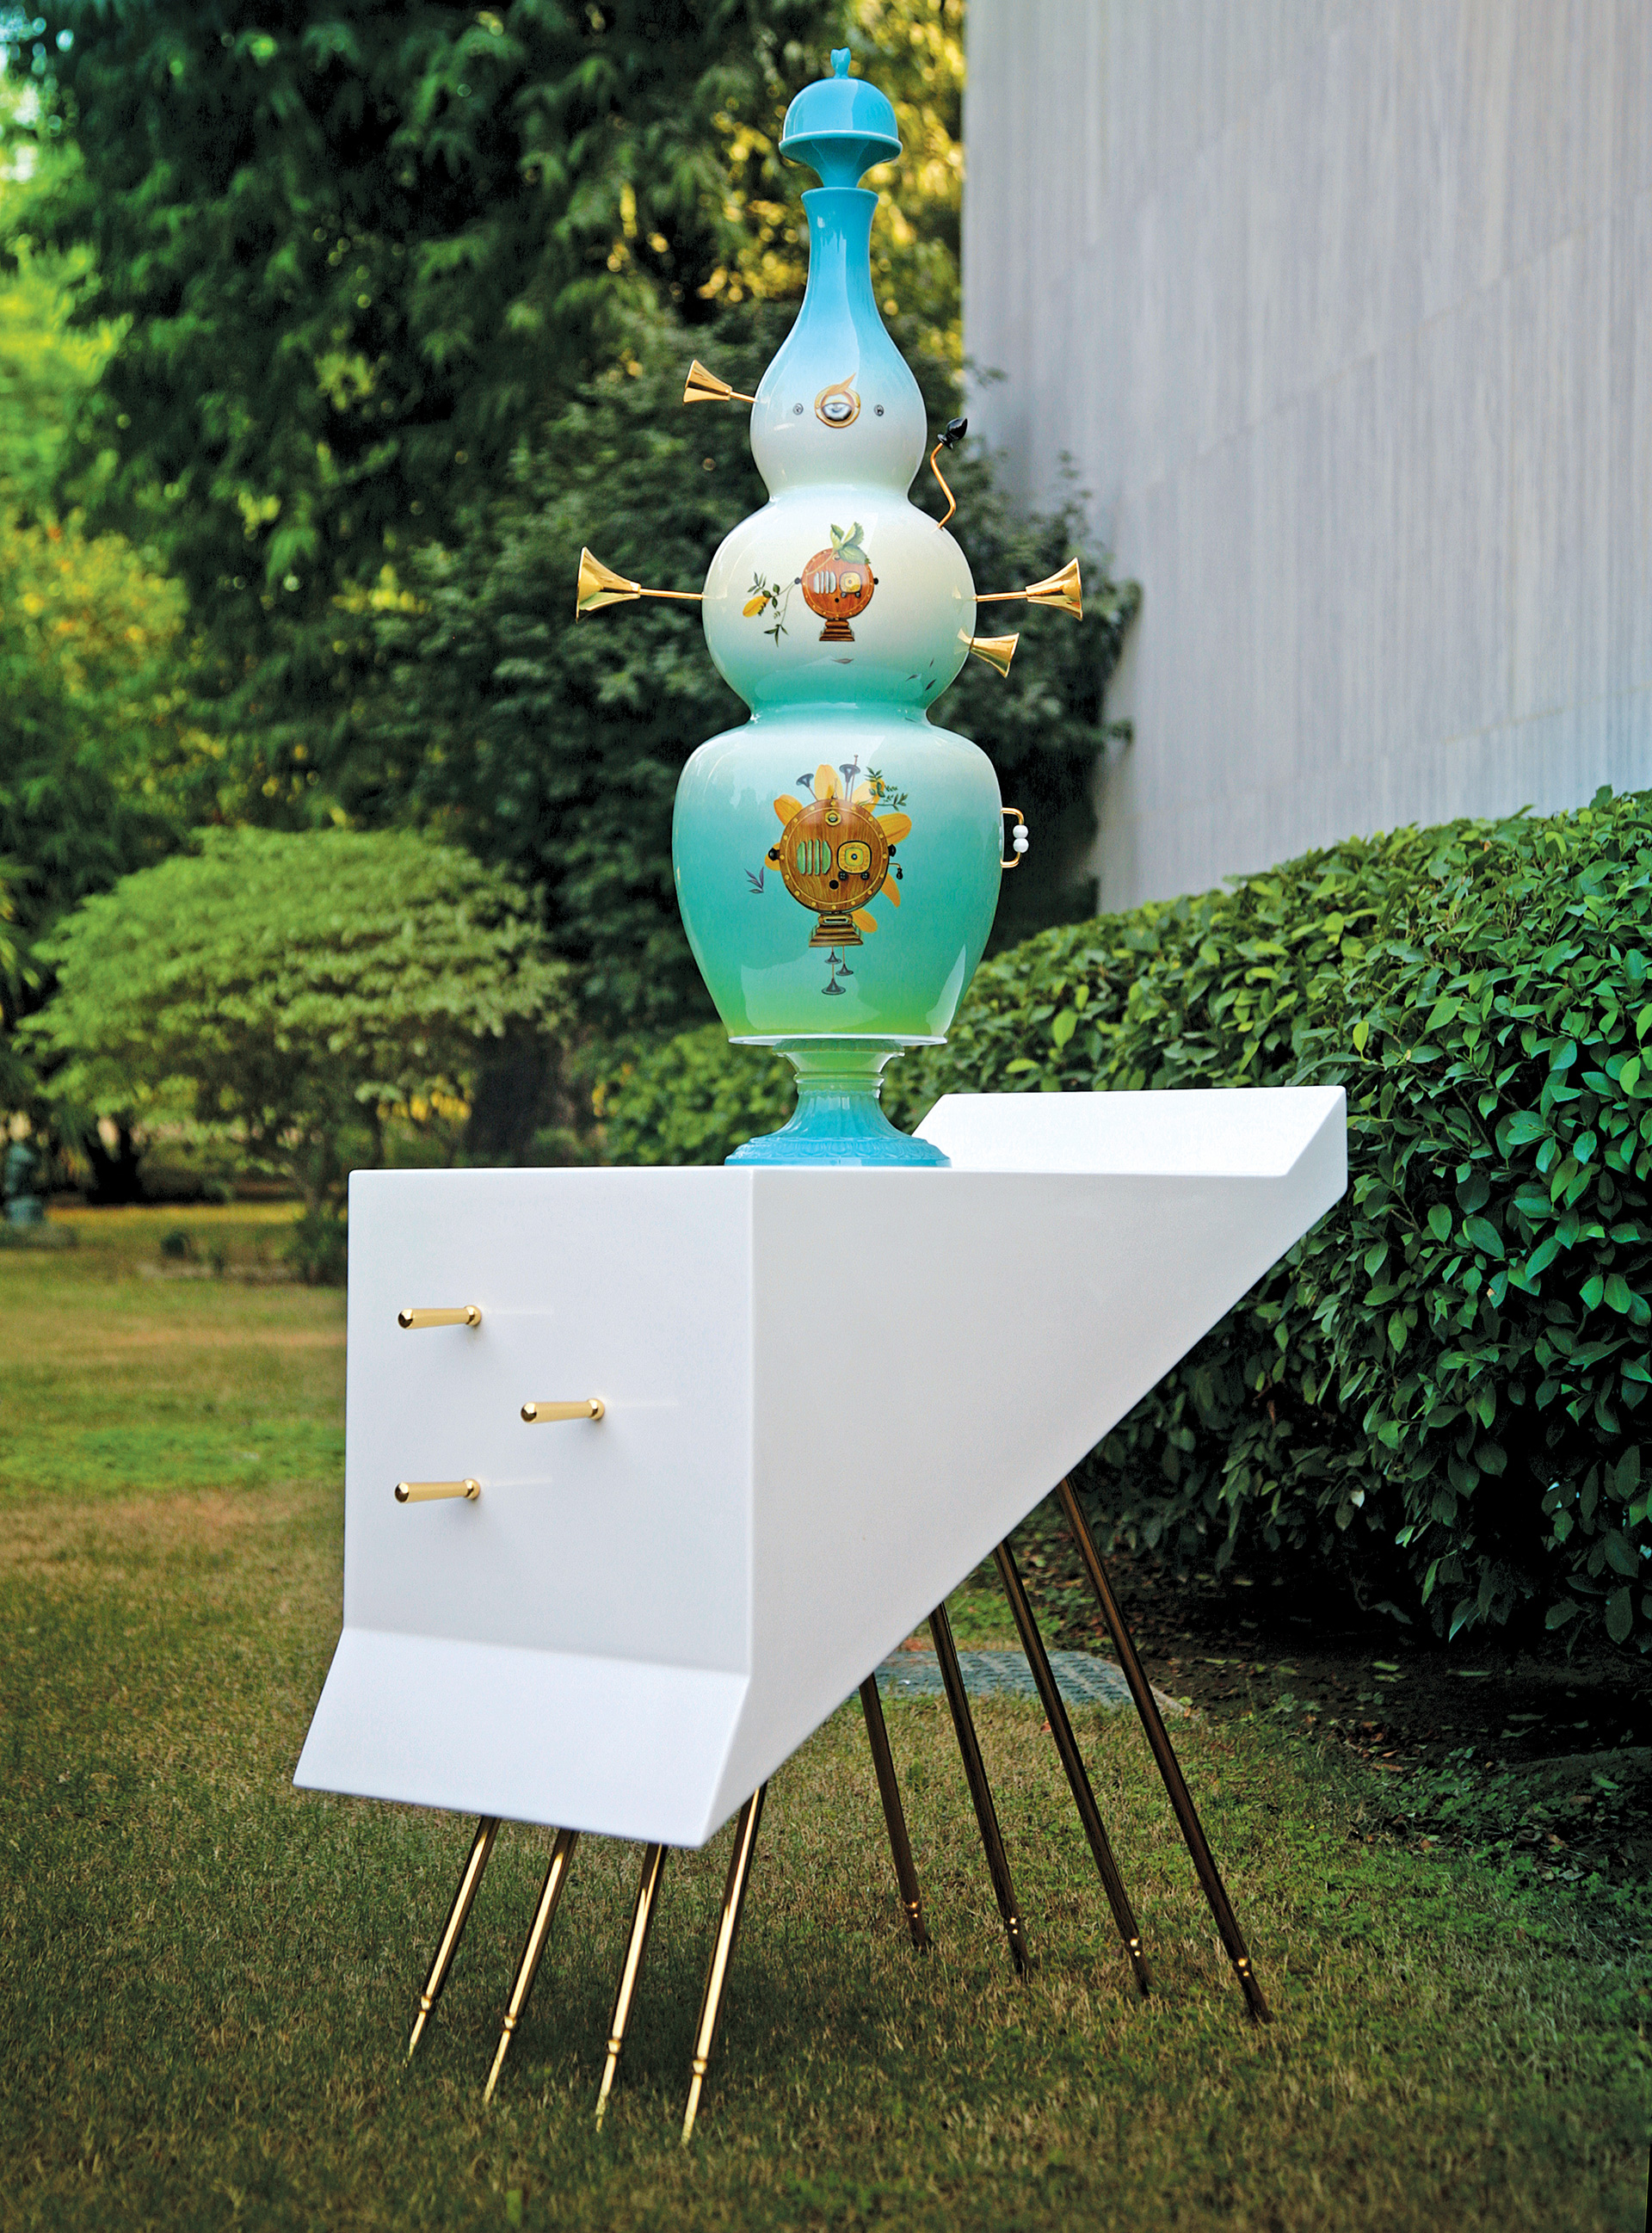 Glaze fired porcelain vases with brass cast components mounted on ornate wooden tables, 2012 (1)| Thukral and Tagra| STIR